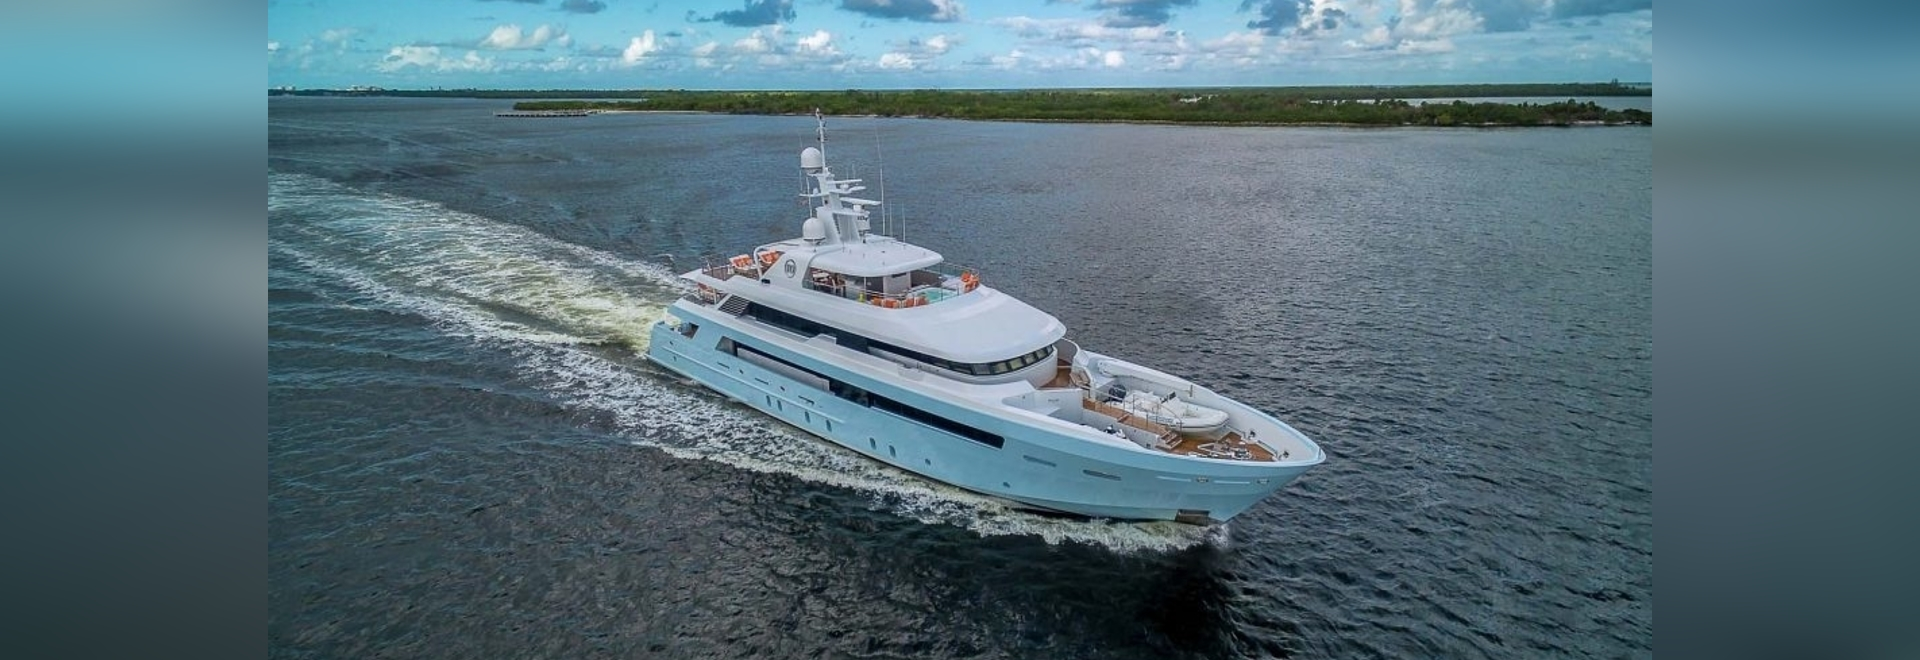 For sale in Florida: 46m Delta Marine motor yacht Time For Us